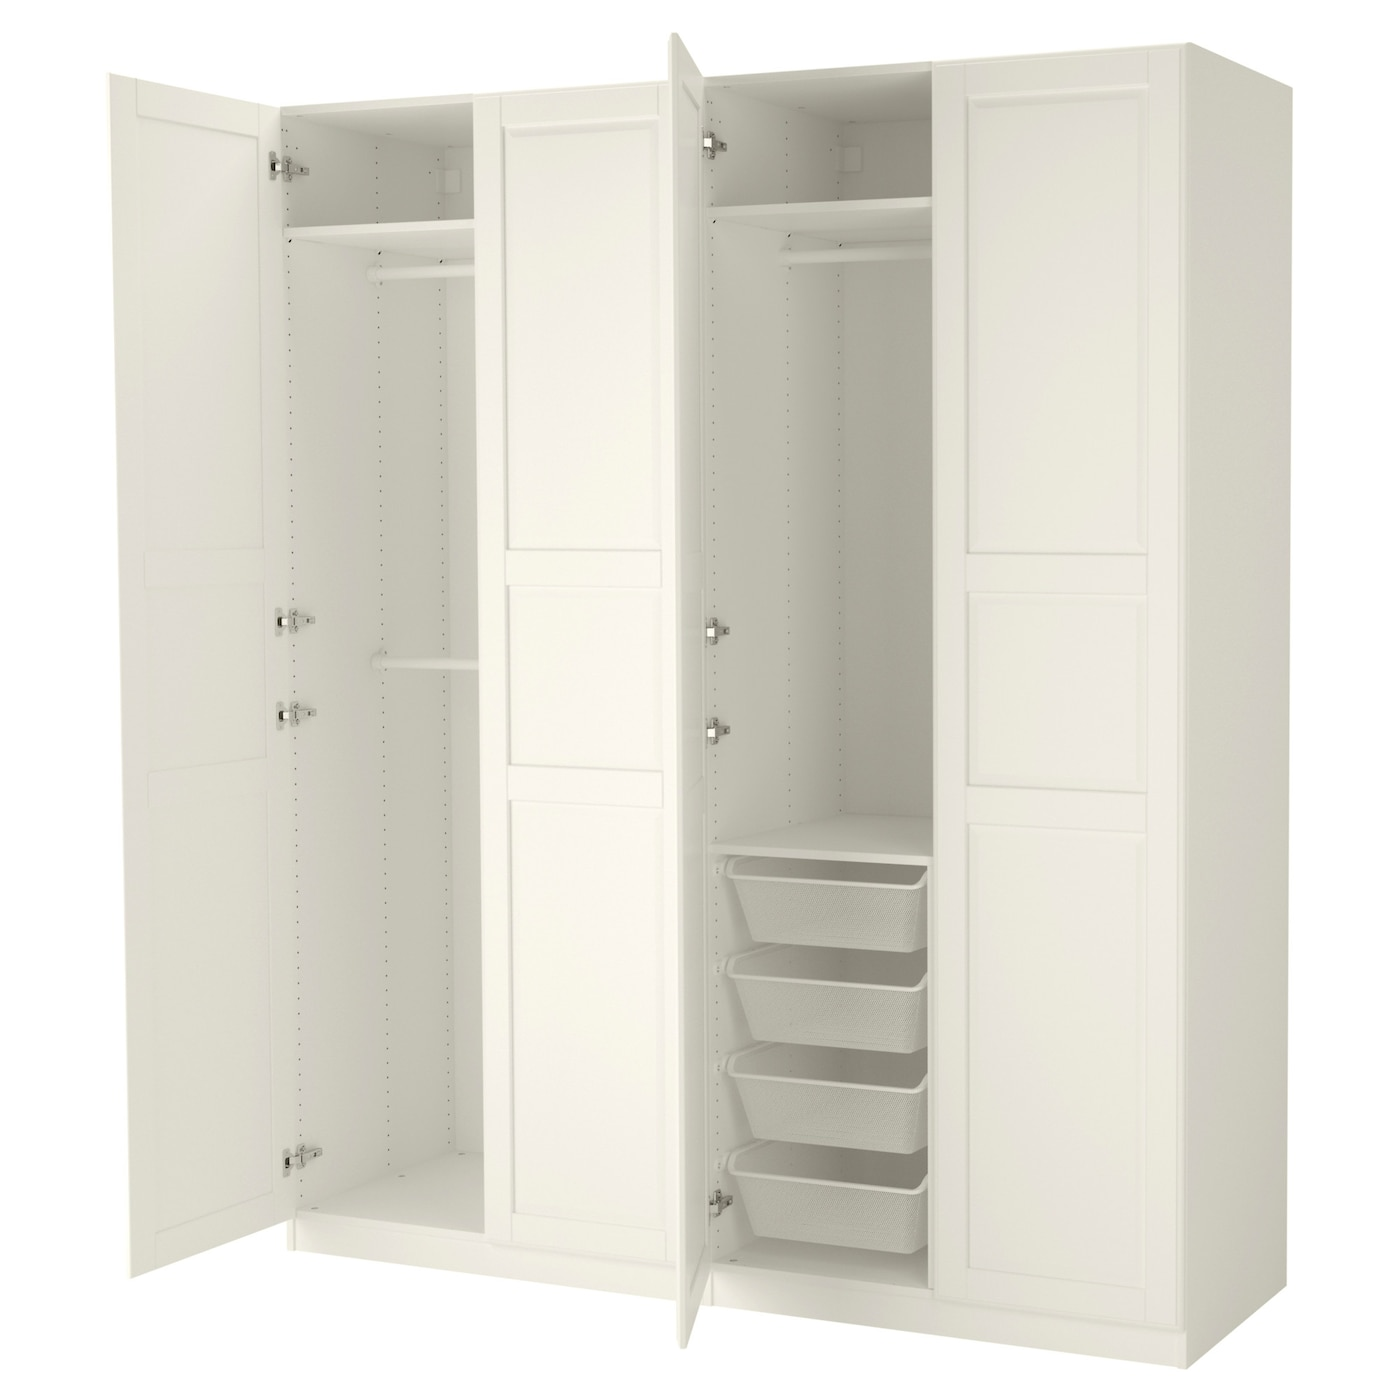 pax wardrobe white tyssedal white 200x60x236 cm ikea. Black Bedroom Furniture Sets. Home Design Ideas